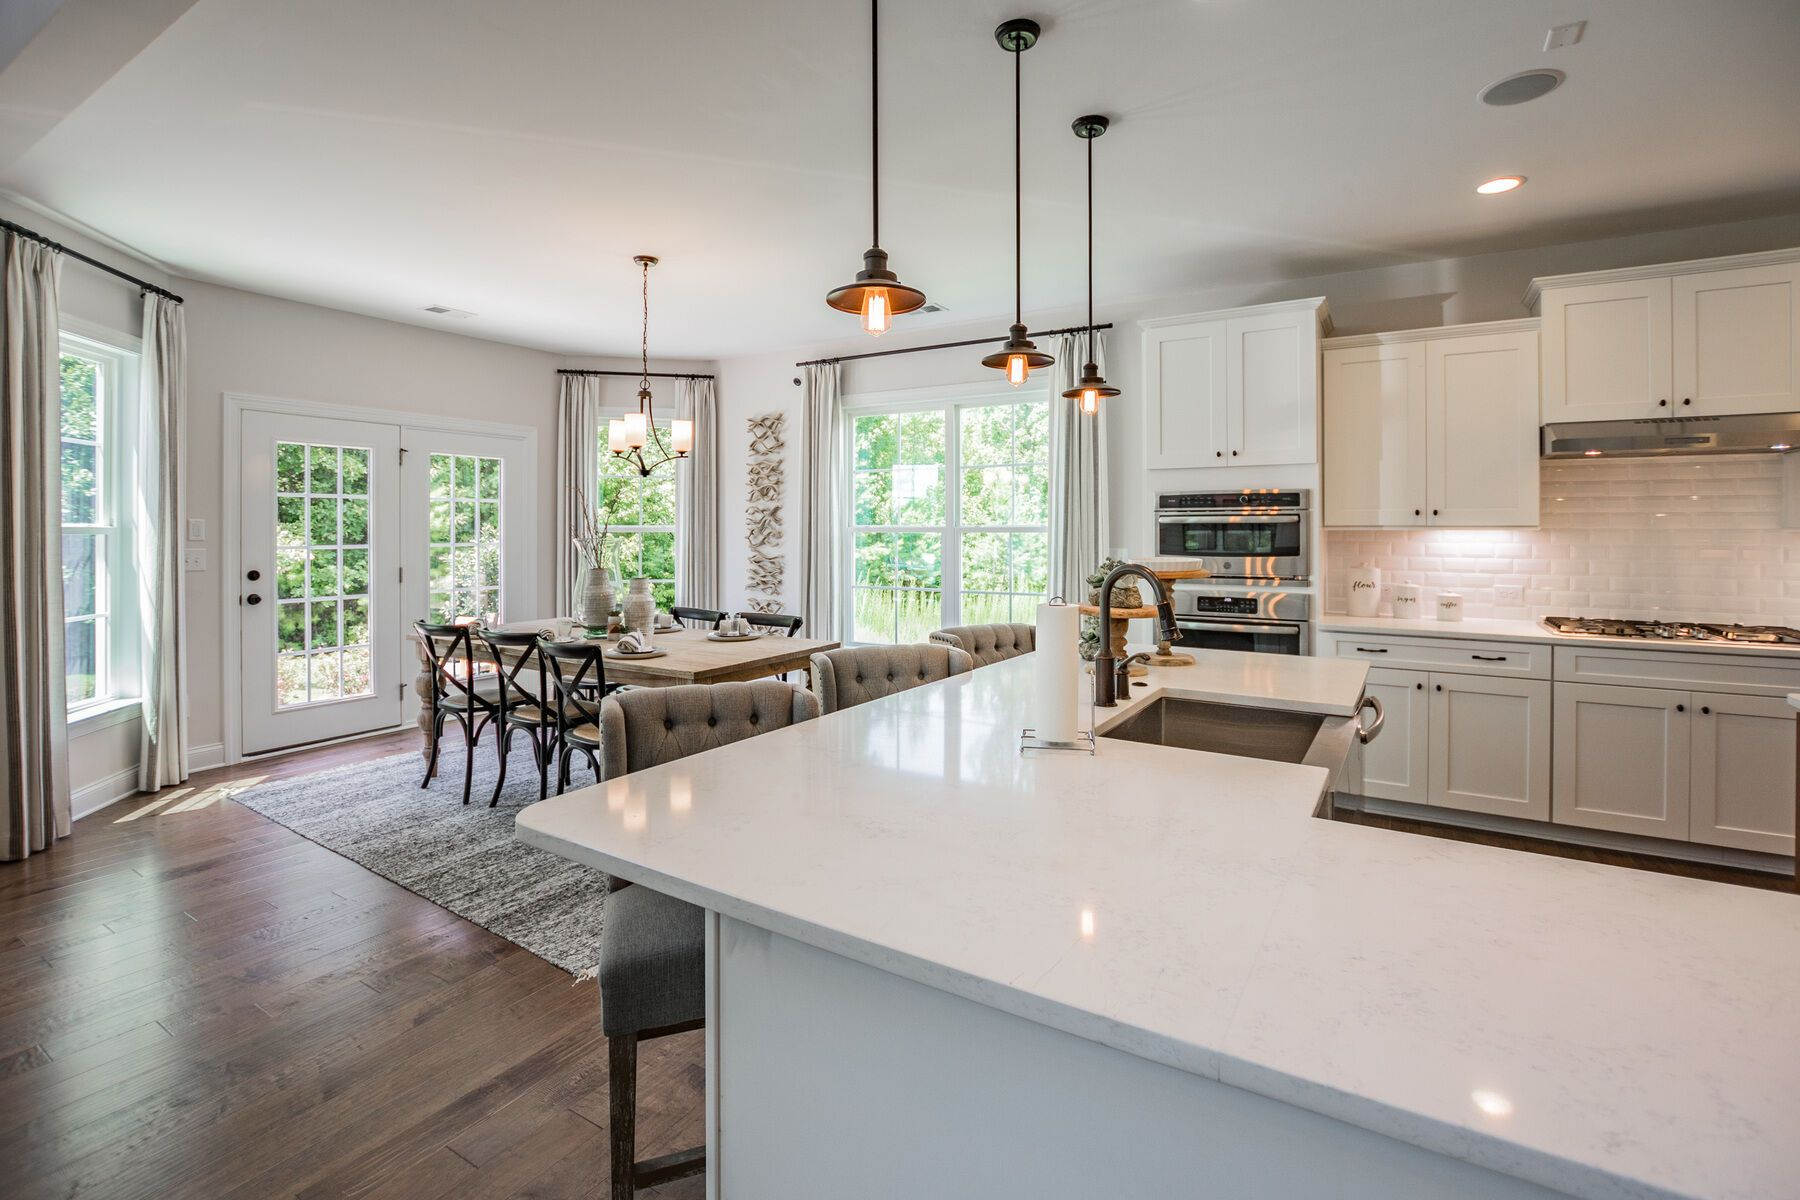 Kitchen featured in the Blythe By M/I Homes in Charlotte, NC